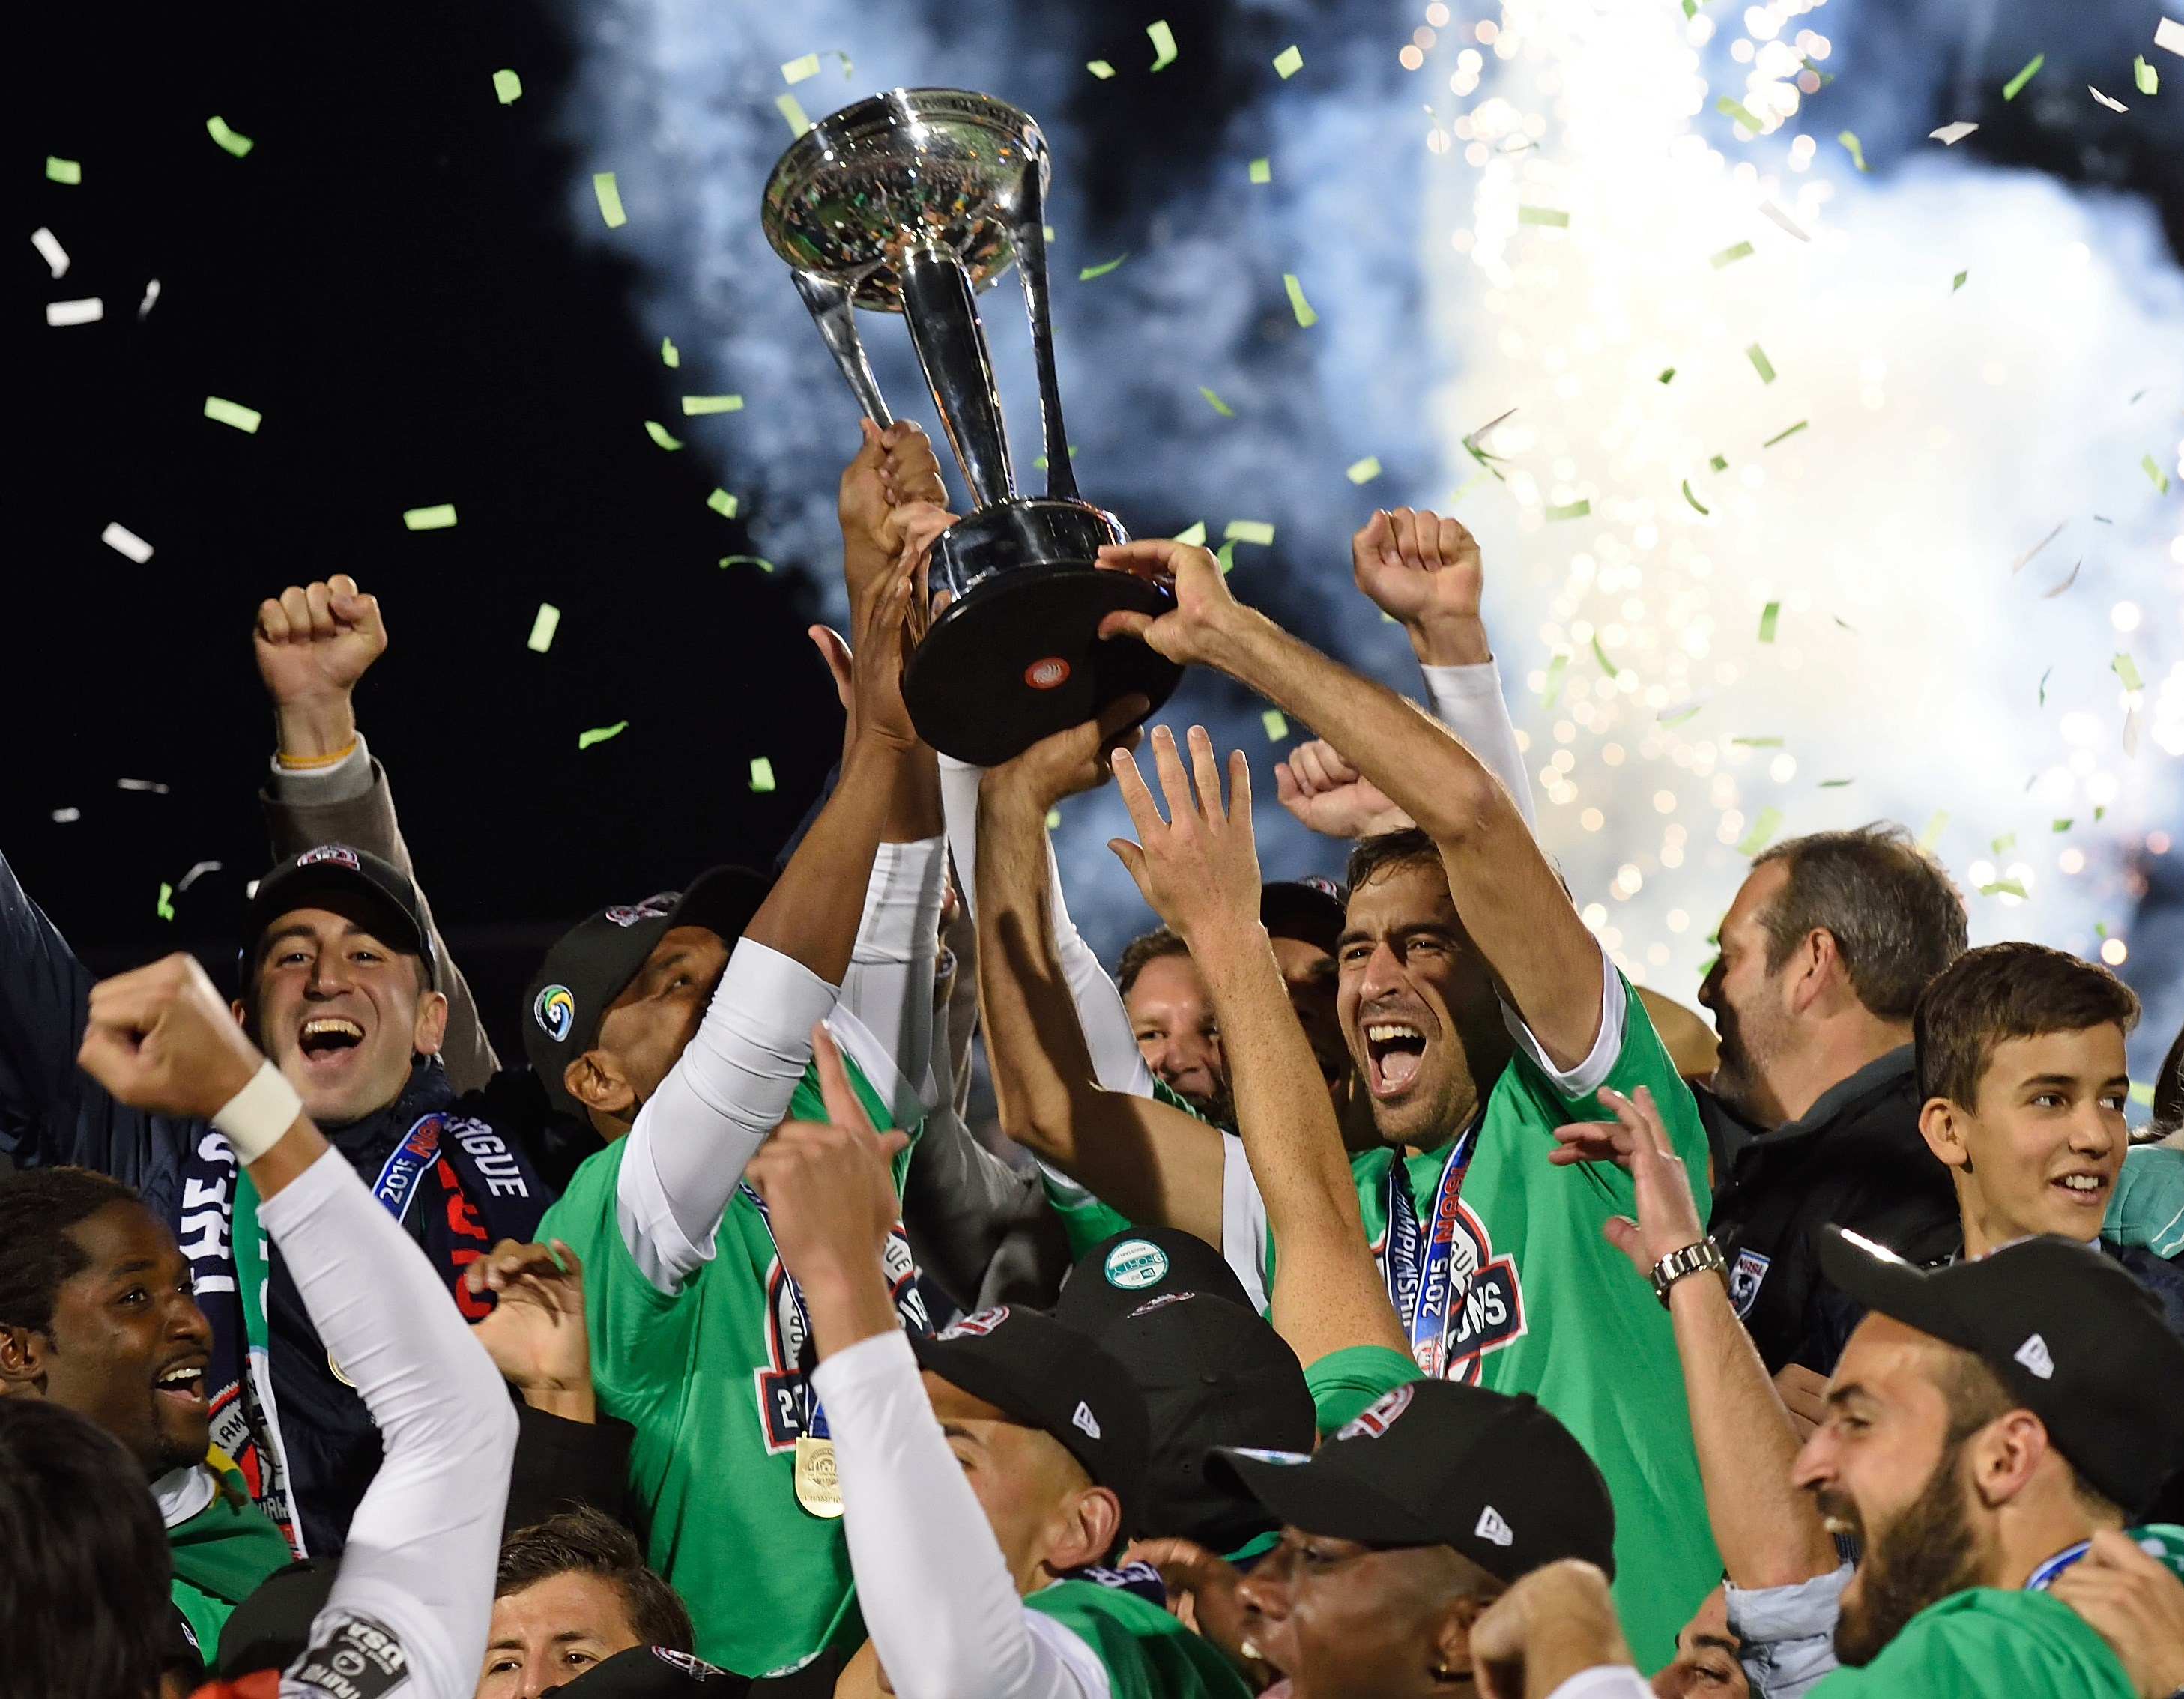 Spanish soccer star Raul (R holding trophy) celebrates with his teammates after the NASL Championship Final match between the NY Cosmos and the Ottawa Fury November 15, 2015 in Hempstead, NY. Raul has planned to retire after the match. AFP PHOTO/DON EMMERT (Photo credit should read DON EMMERT/AFP/Getty Images)